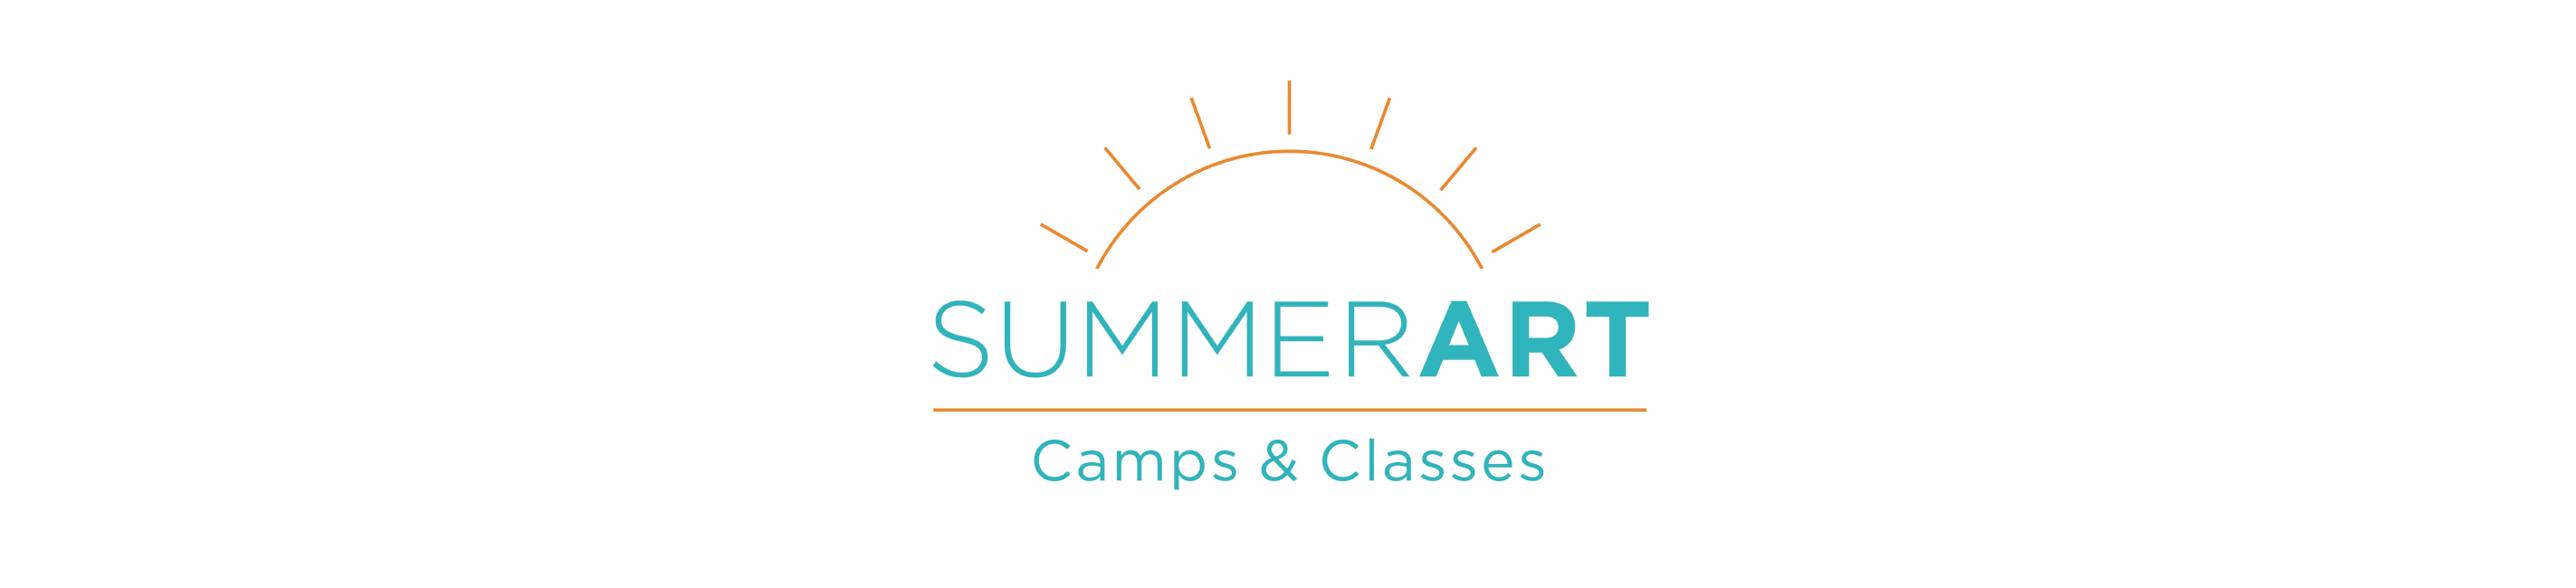 Summer Art logo type with a simple sun above